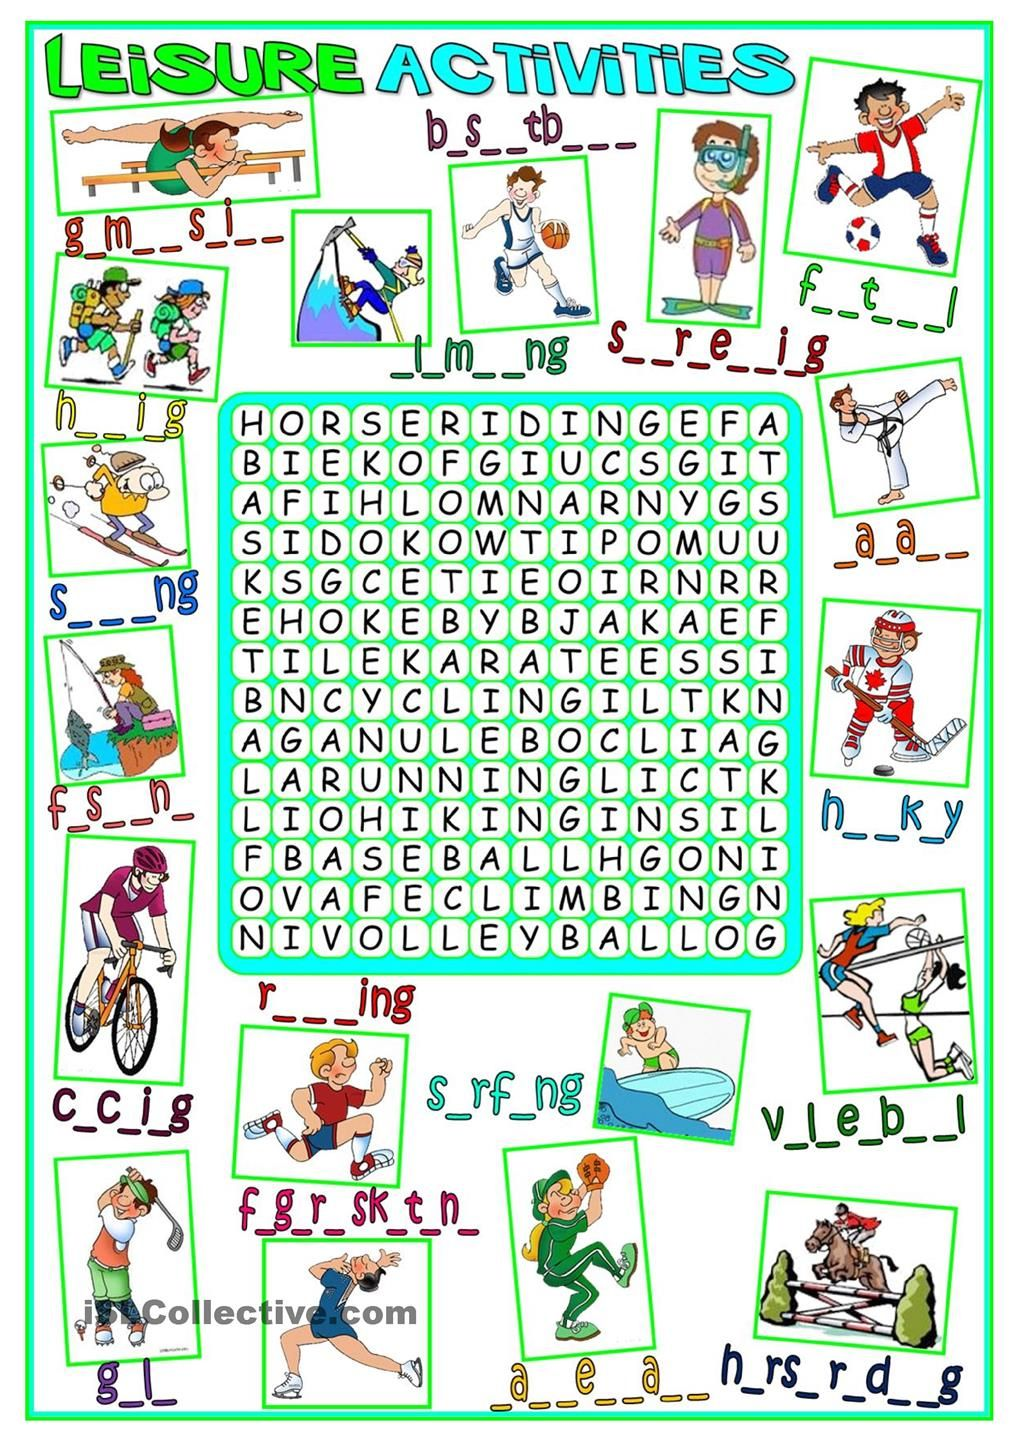 leisure activities wordsearch filler activities pinterest activities worksheets and. Black Bedroom Furniture Sets. Home Design Ideas